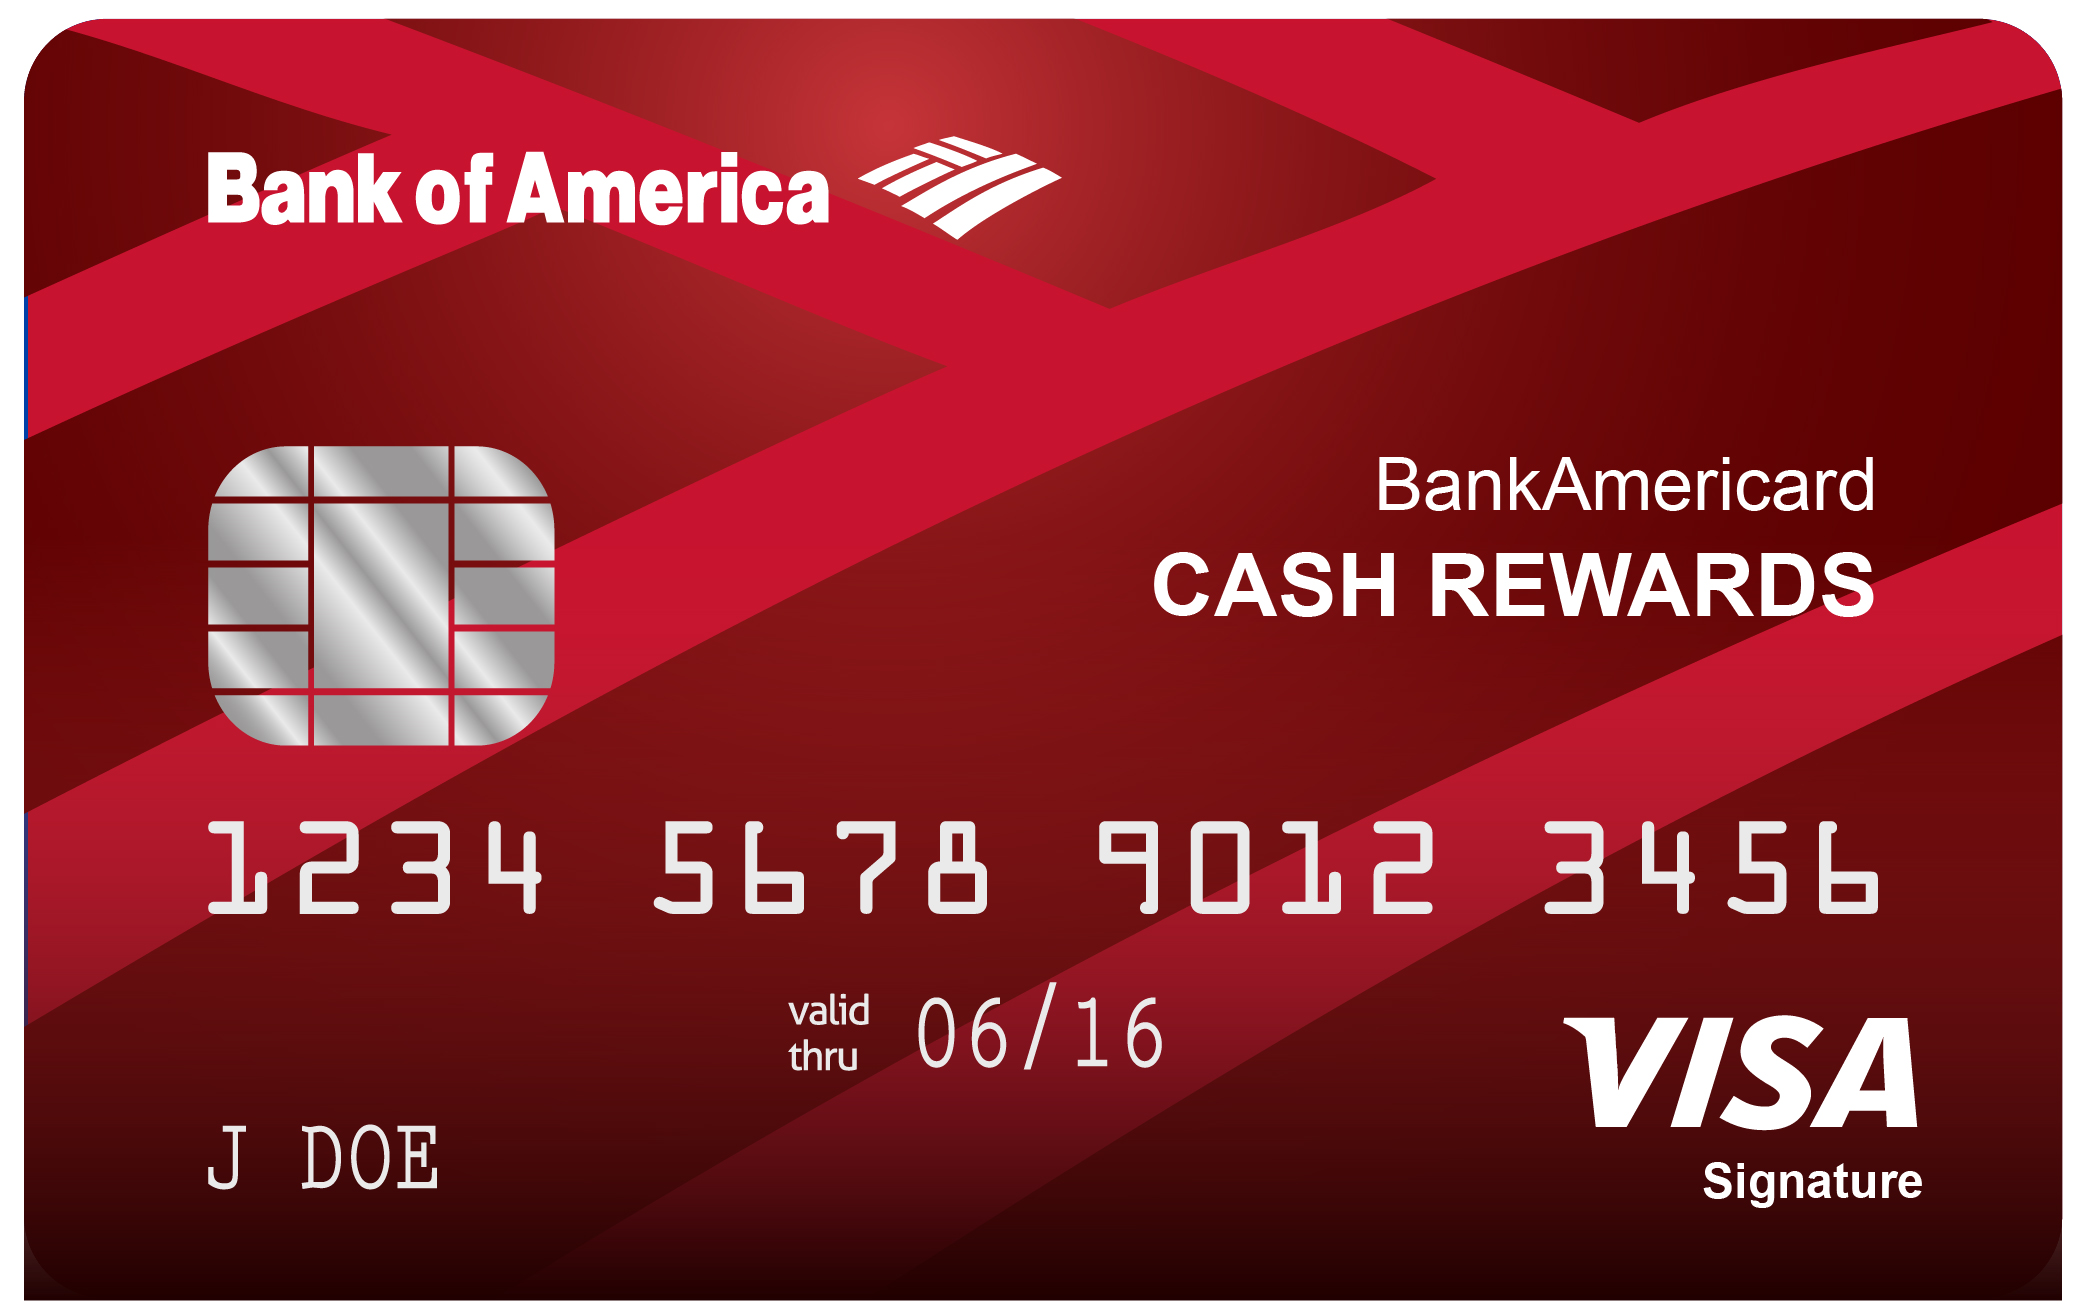 BankAmericard Cash Rewards